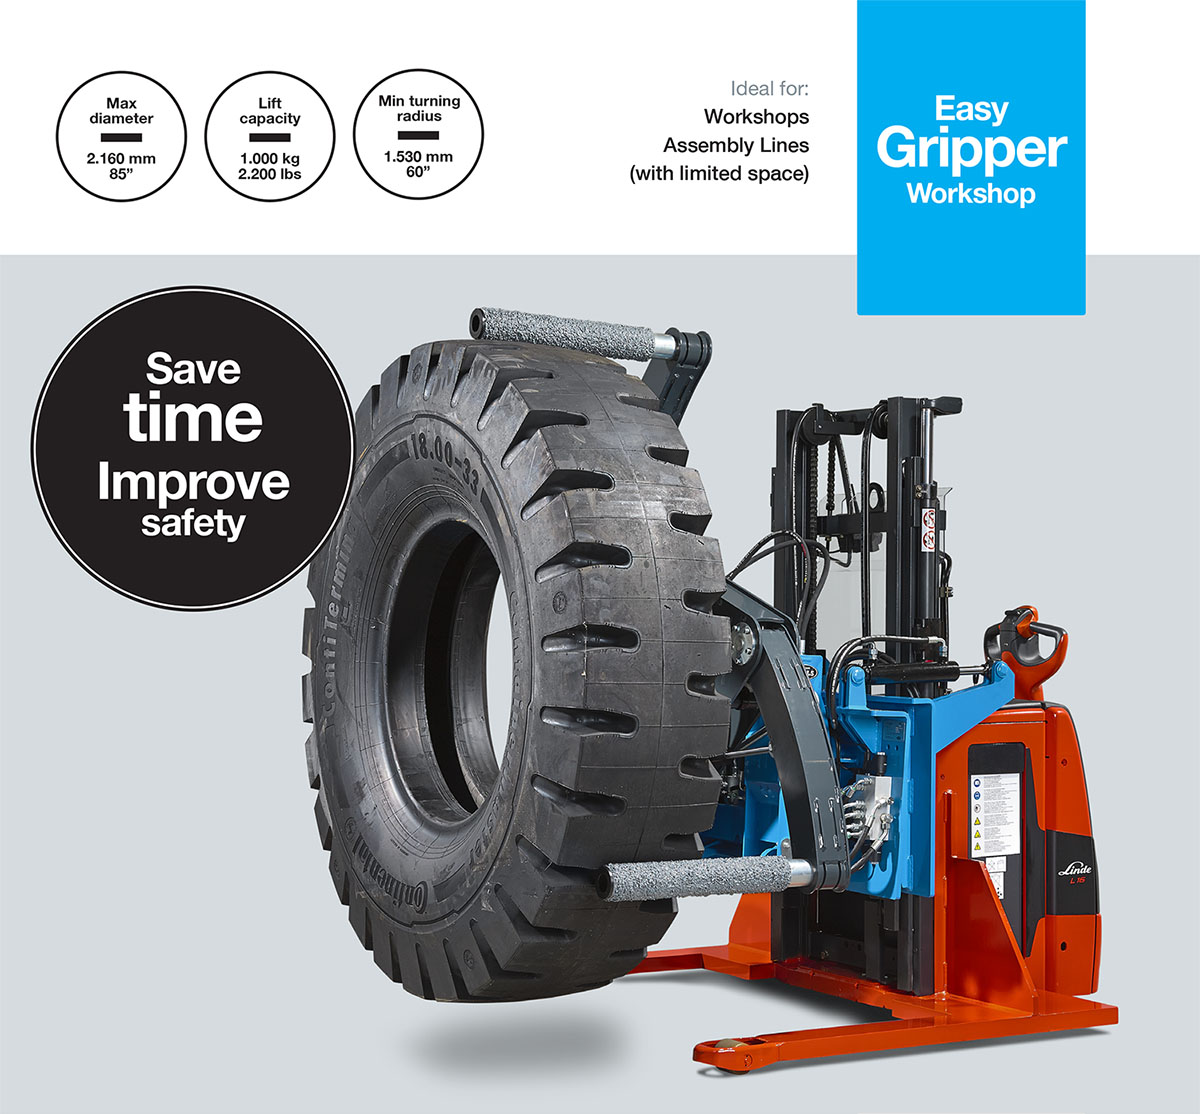 Easy GripperWorkshop - Professional tyre handling tools for workshops and assembly lines